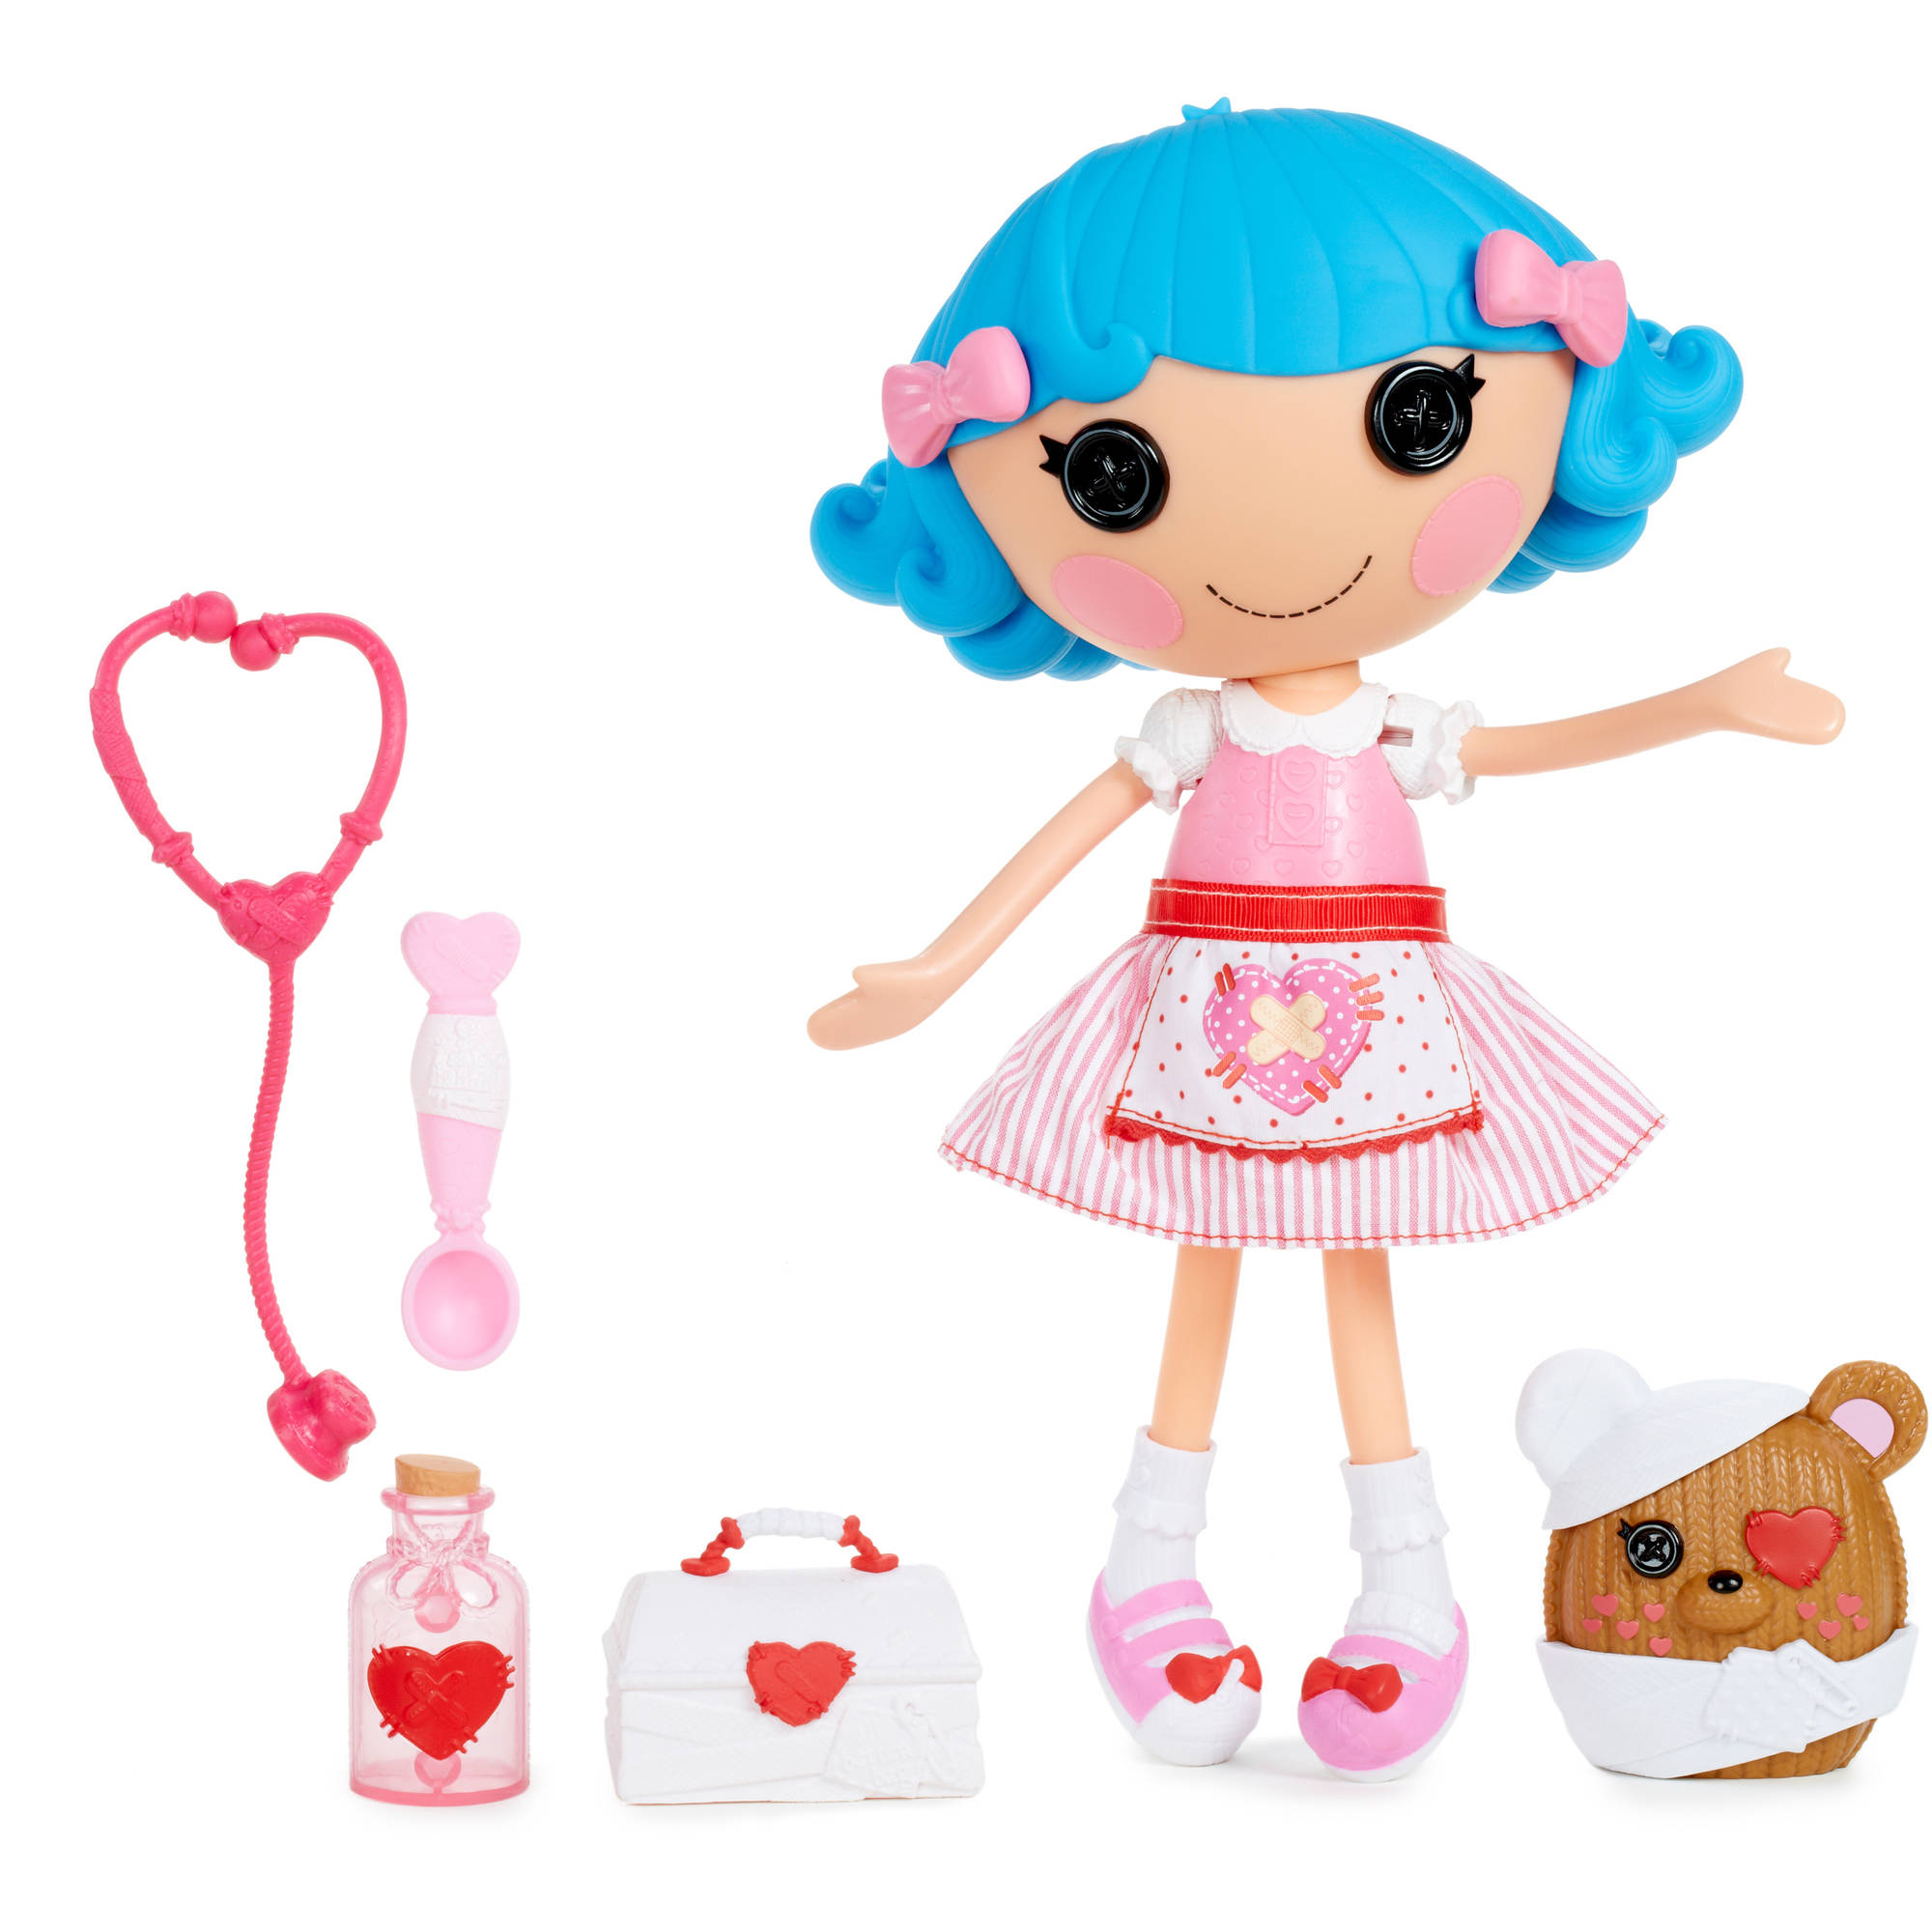 Lalaloopsy Large Doll with Accessories, Rosy Bumps 'N' Bruises